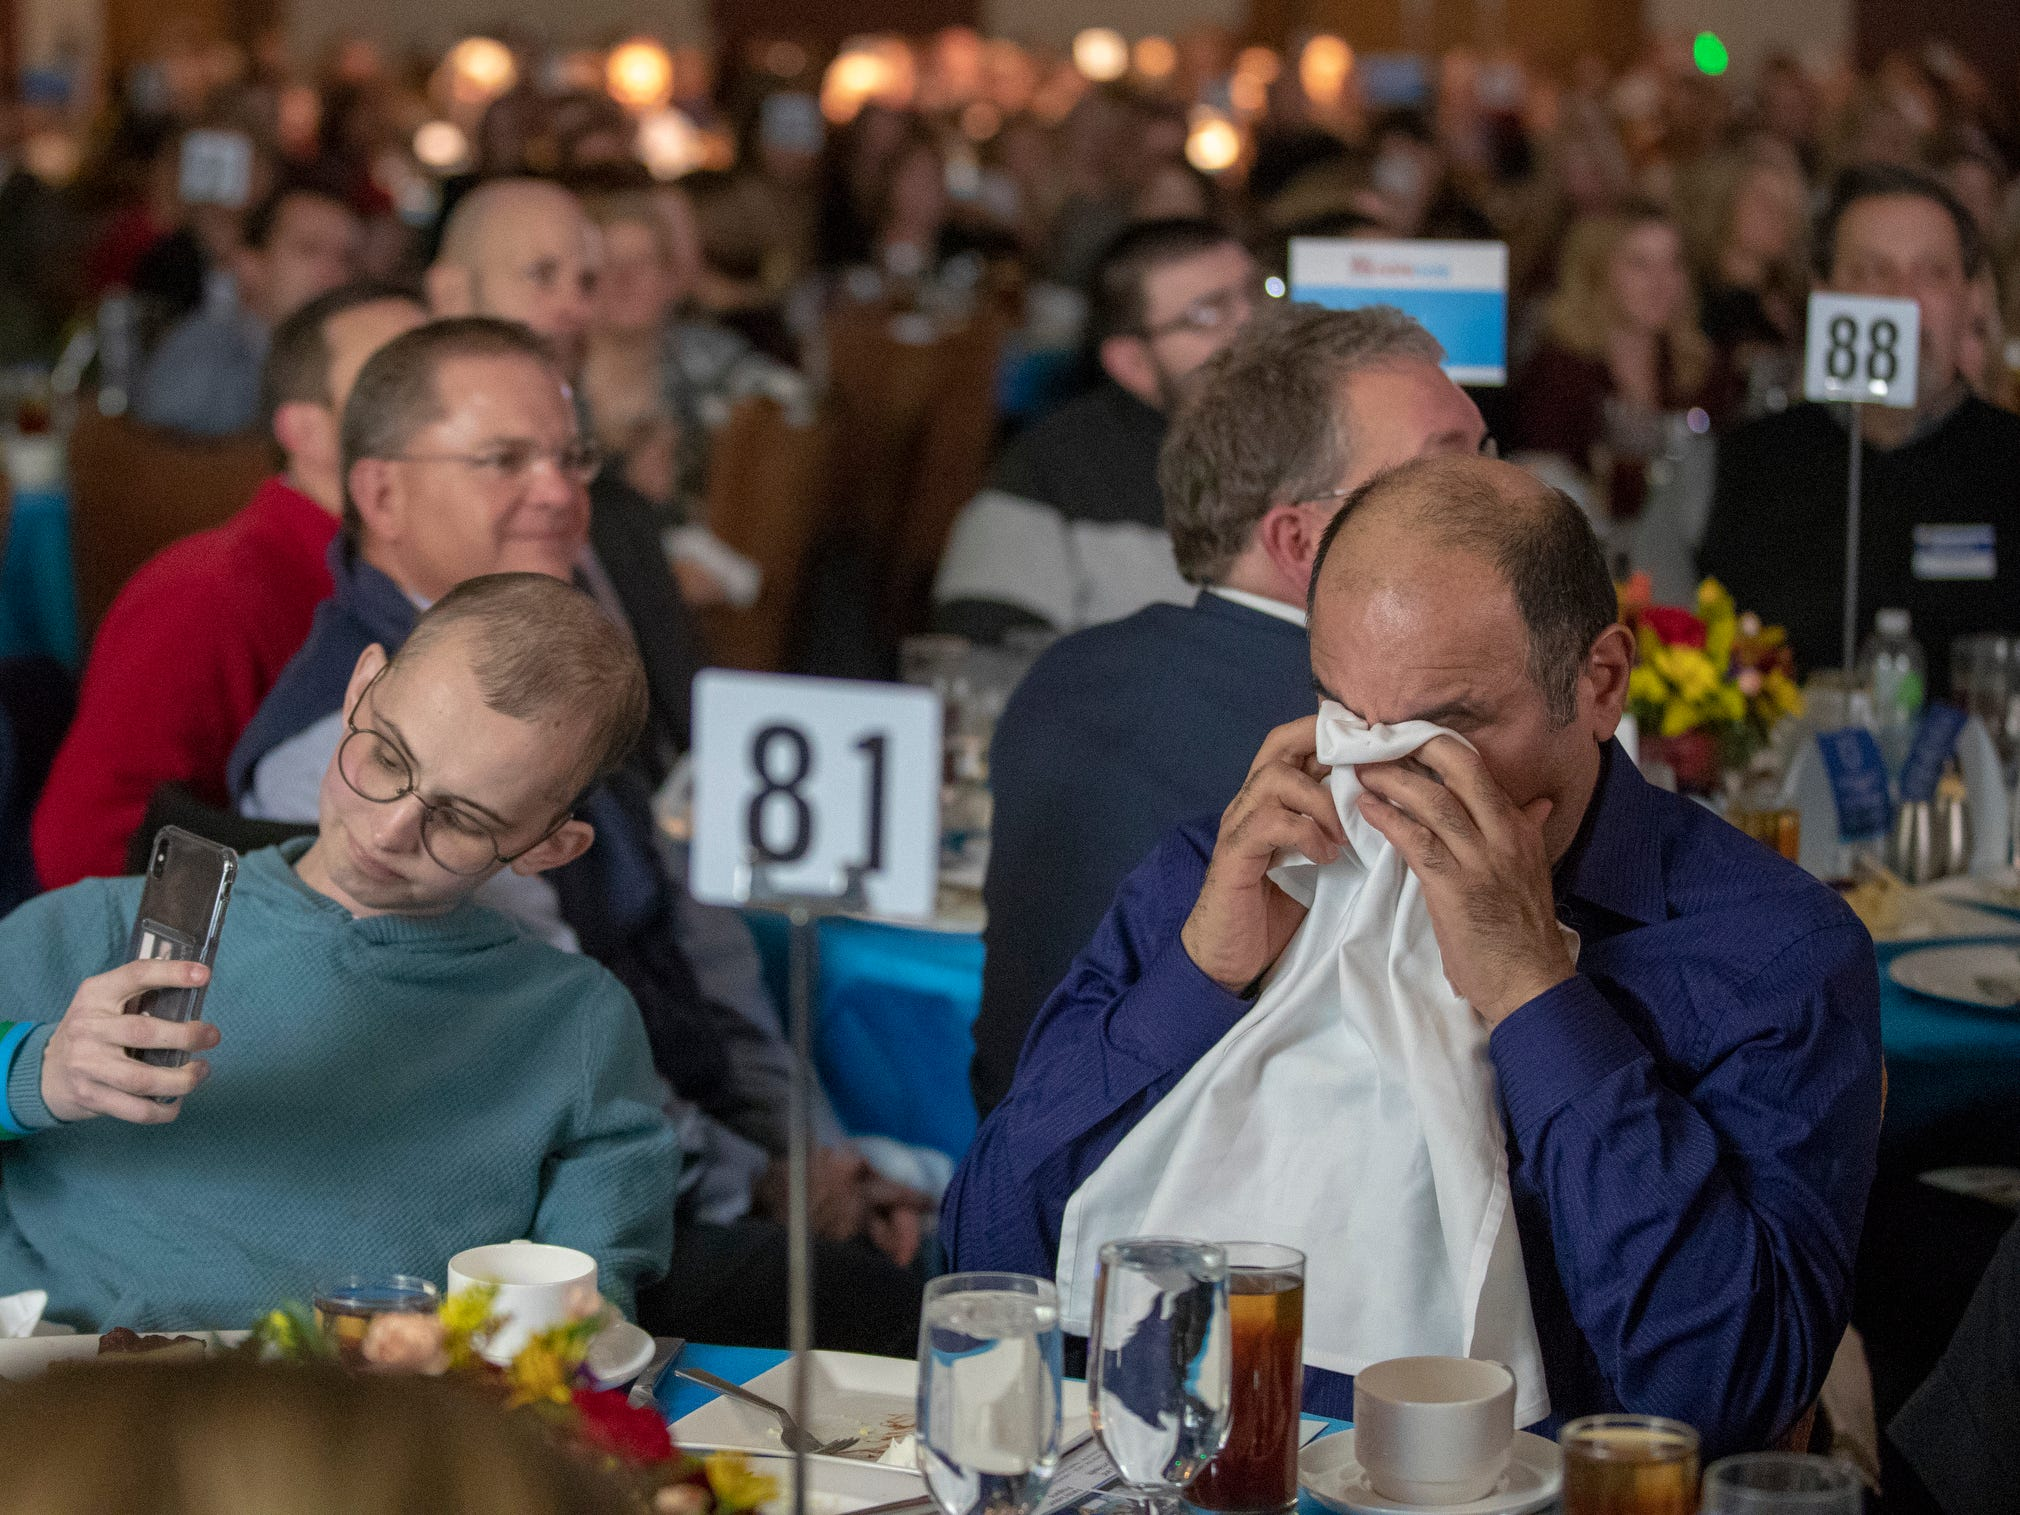 Tyler Trent records a video of him talking as cancer researcher Reza Saadatzadeh, PhD, wipes away tears at a fundraiser luncheon for Riley Children's Foundation's Be The Hope Now campaign, Indianapolis, Wednesday, Nov. 28, 2018. Trent, who has the rare bone cancer osteosarcoma, is in hospice care, and was given the Sagamore of the Wabash award, given to distinguished Hoosiers.